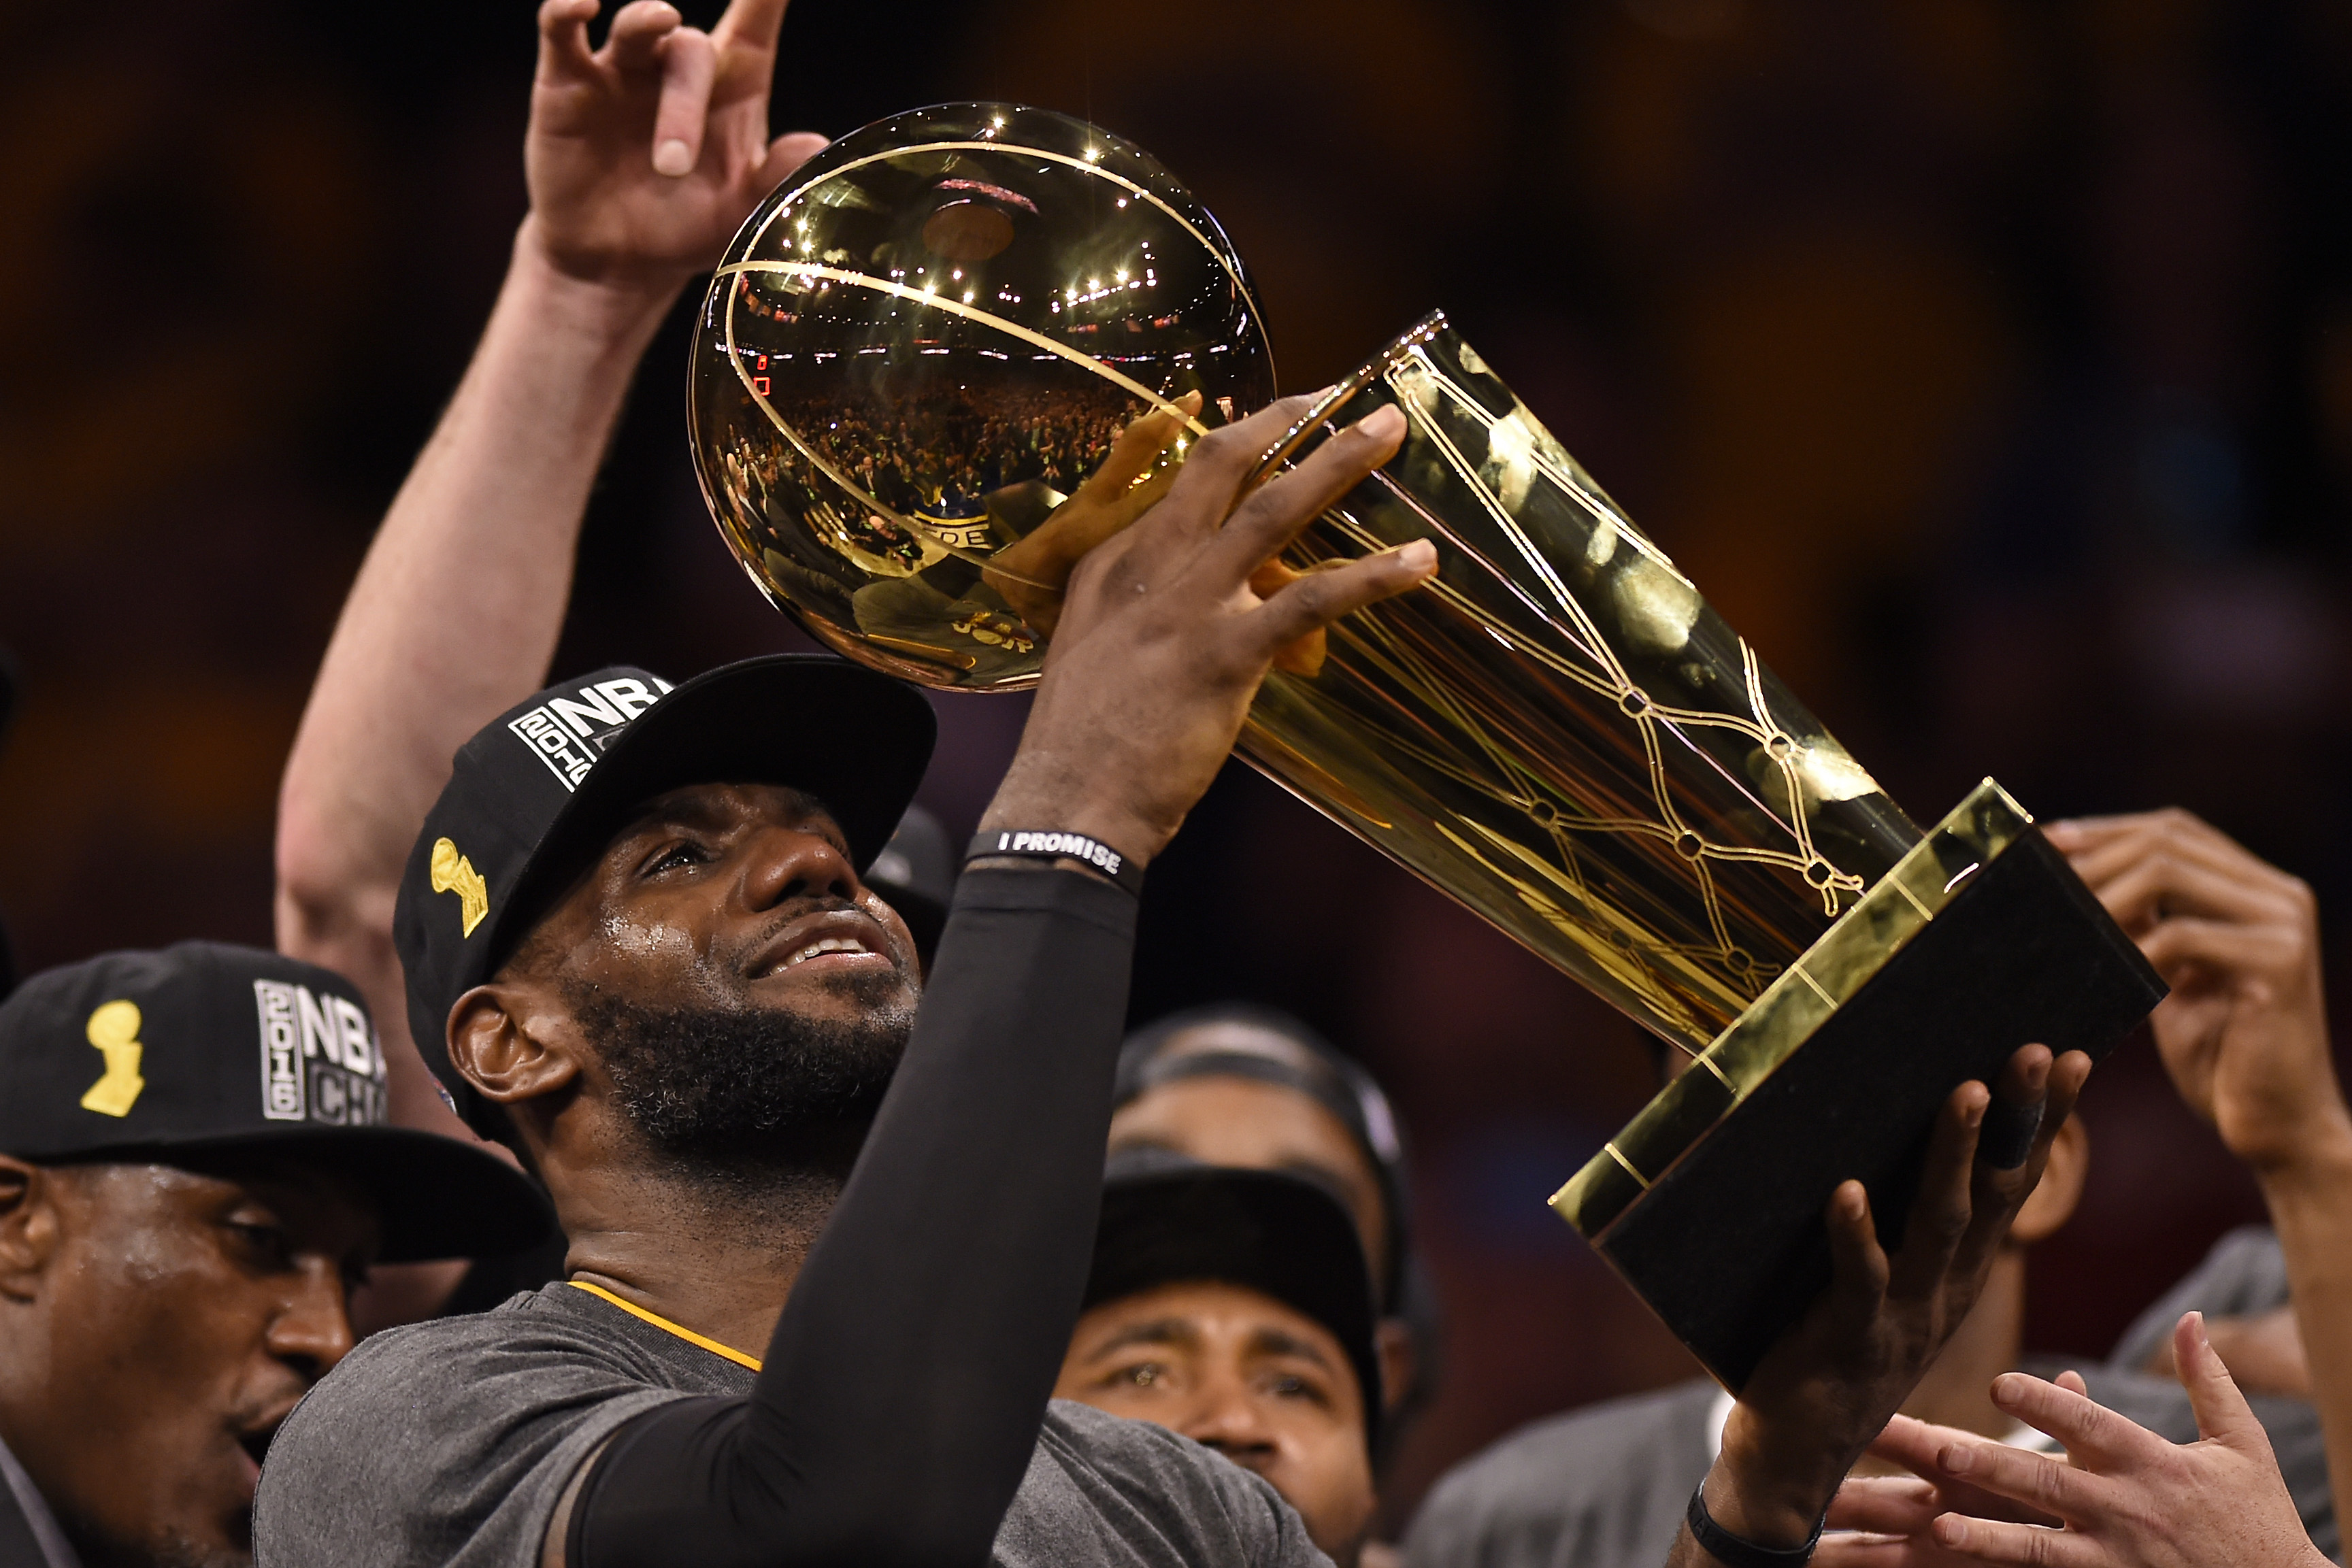 Cleveland Cavaliers' LeBron James (23) holds up the Larry O'Brien trophy after defeating the Golden State Warriors in Game 7 of the NBA Finals at Oracle Arena in Oakland, Calif., on Sunday, June 19, 2016. The Cleveland Cavaliers defeated the Golden State